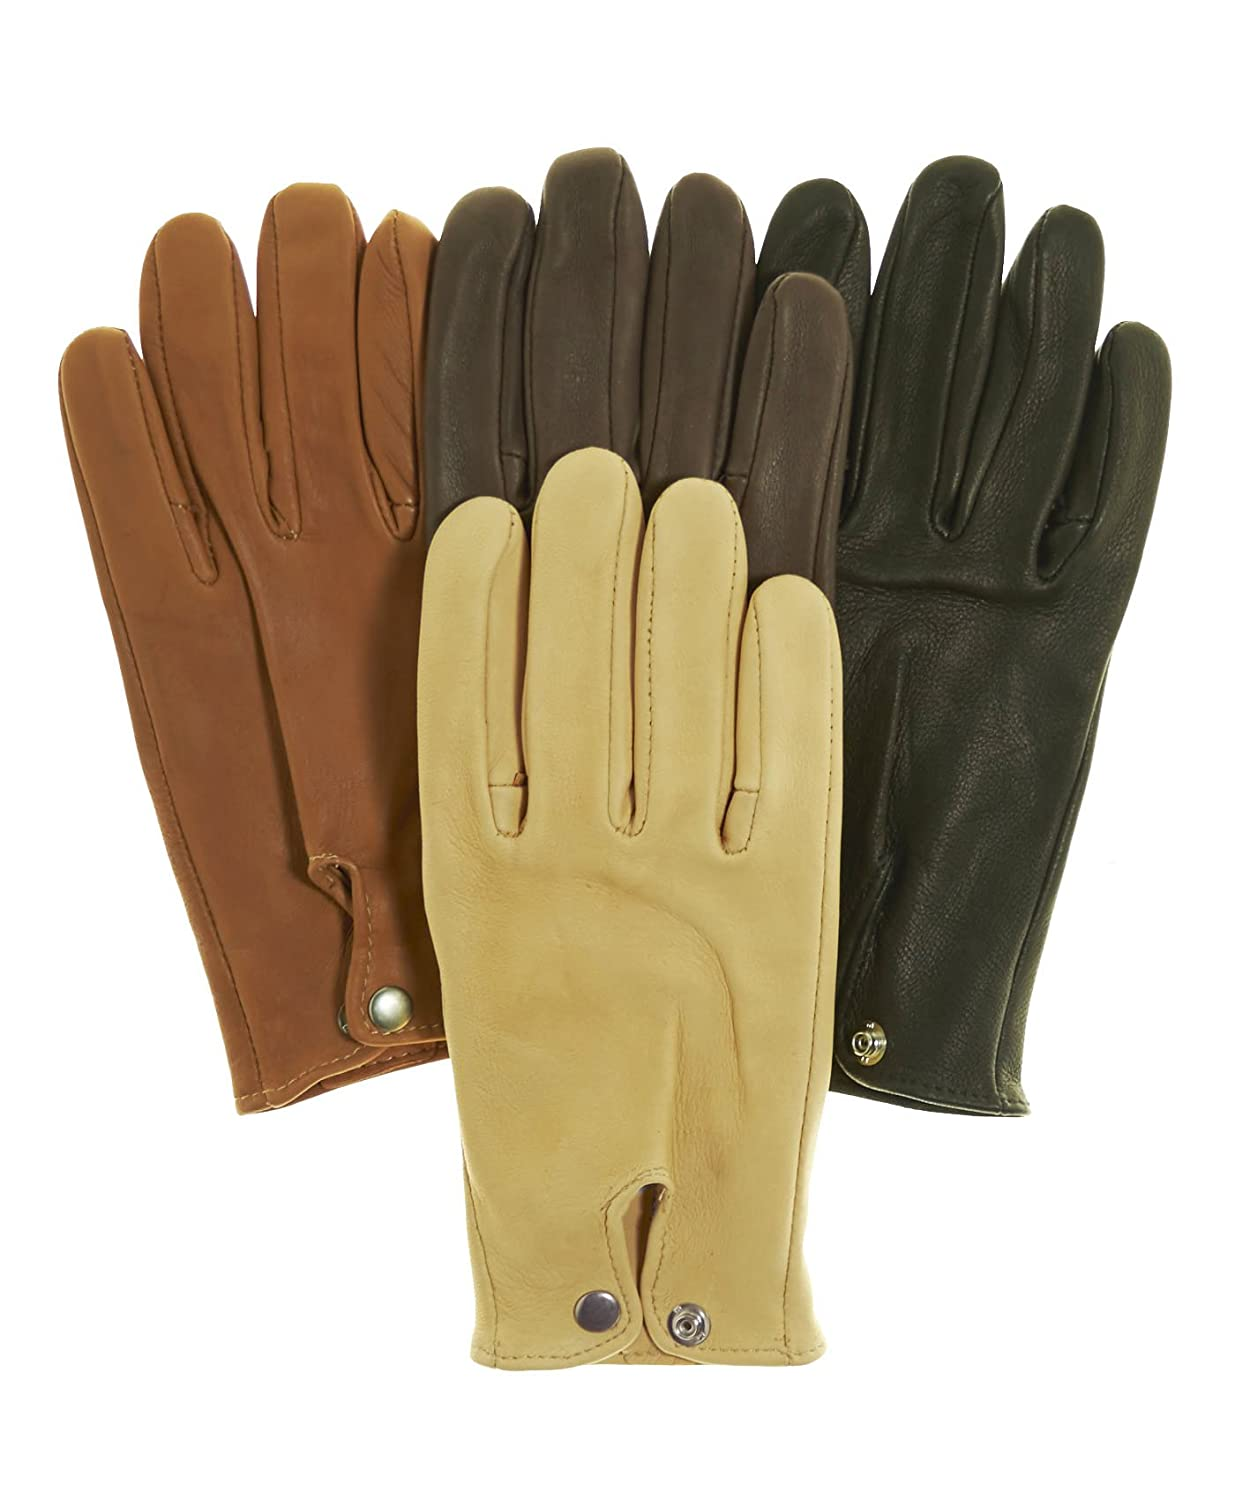 1910s Men's Edwardian Fashion and Clothing Guide  Deerskin Roper Gloves $56.95 AT vintagedancer.com